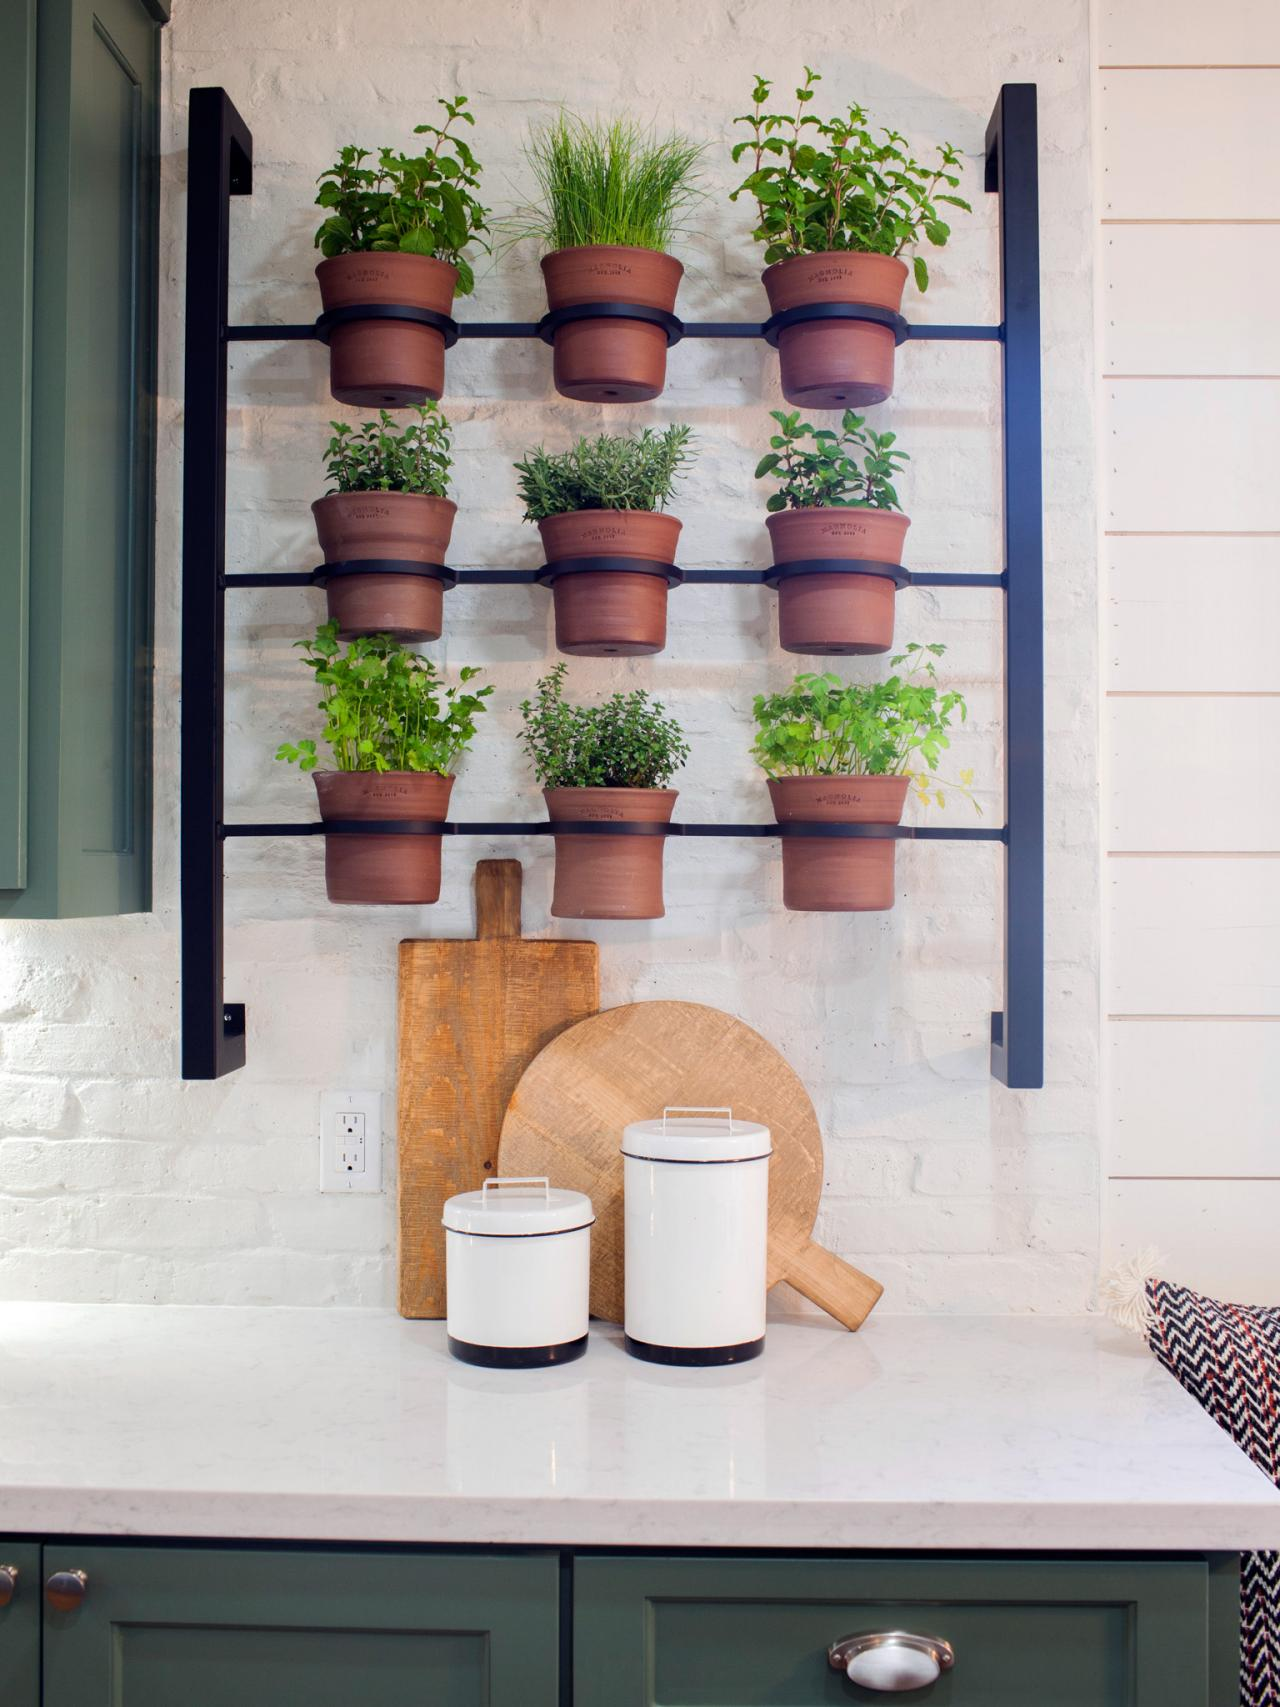 Container gardening ideas from joanna gaines hgtv 39 s Indoor living wall herb garden